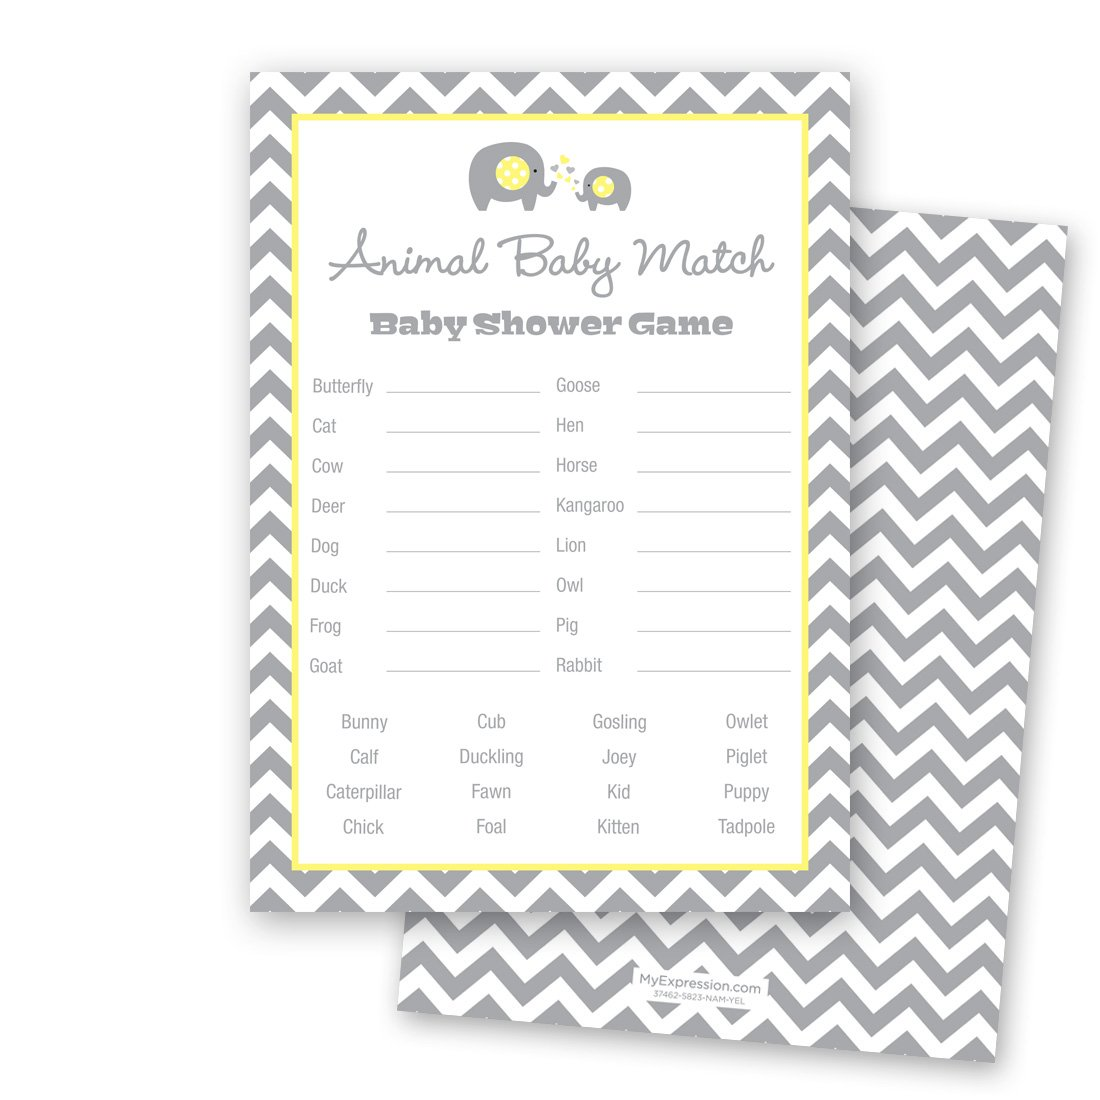 24 Chevron Elephant Baby Shower Animal Name Game Cards (Yellow) by MyExpression.com (Image #1)